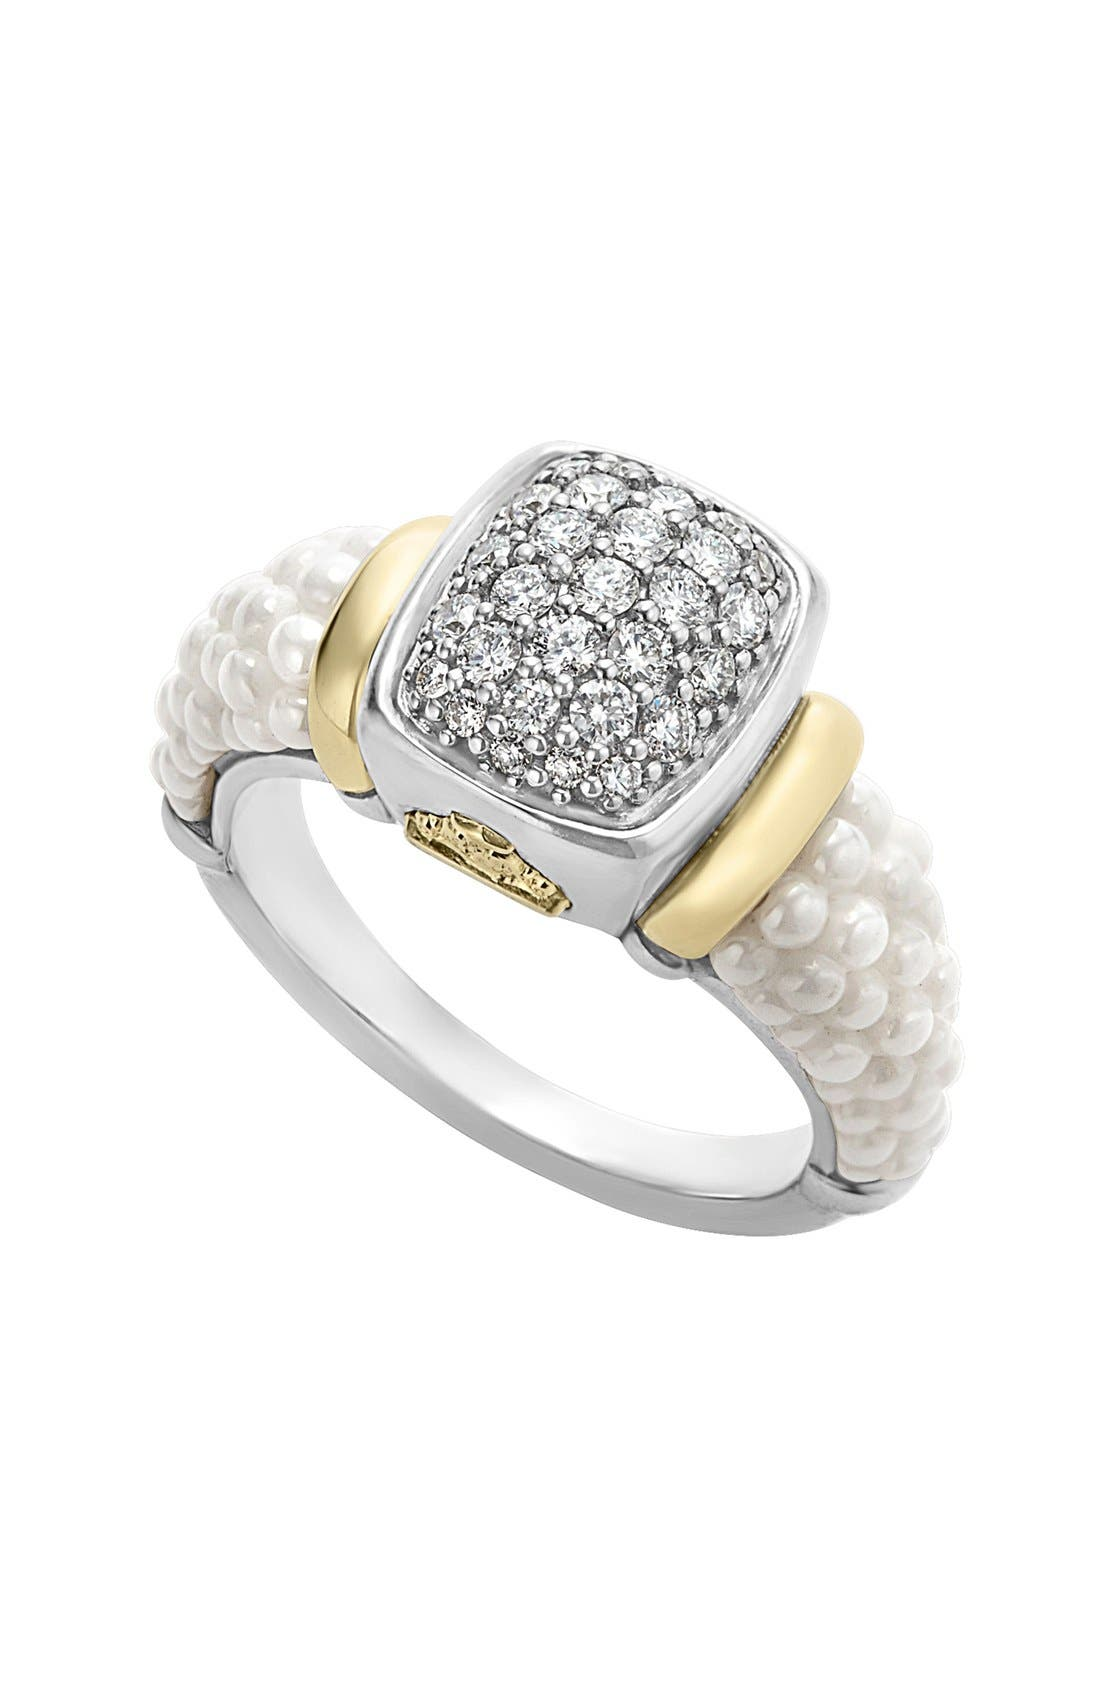 LAGOS Caviar Diamond Ring